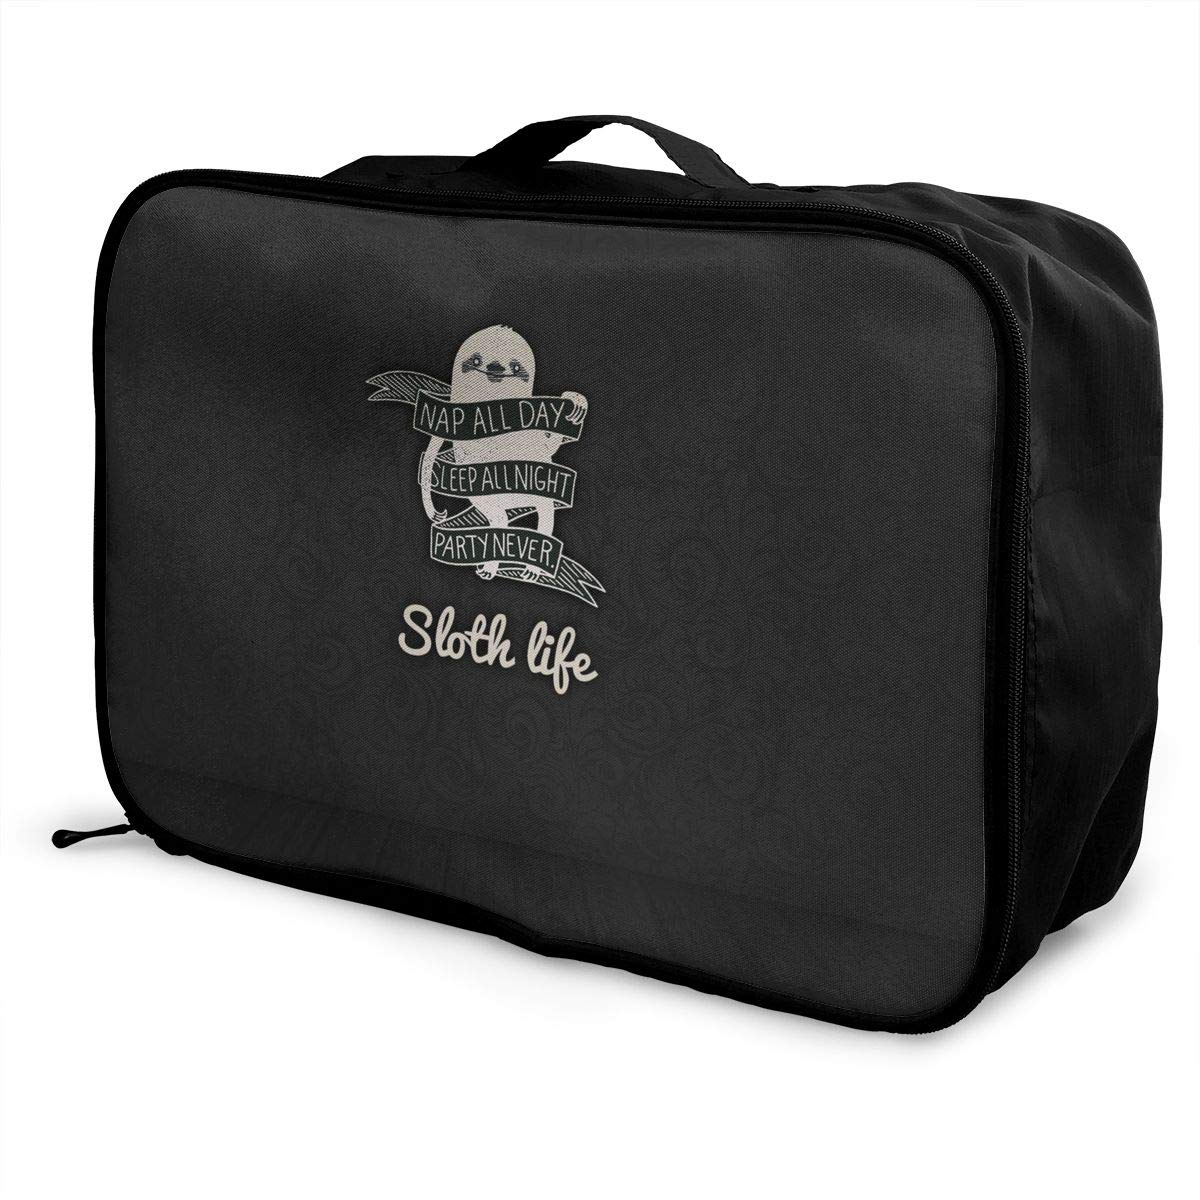 ADGAI Sloth Sleeps All Night Without Going to The Party Canvas Travel Weekender Bag,Fashion Custom Lightweight Large Capacity Portable Luggage Bag,Suitcase Trolley Bag